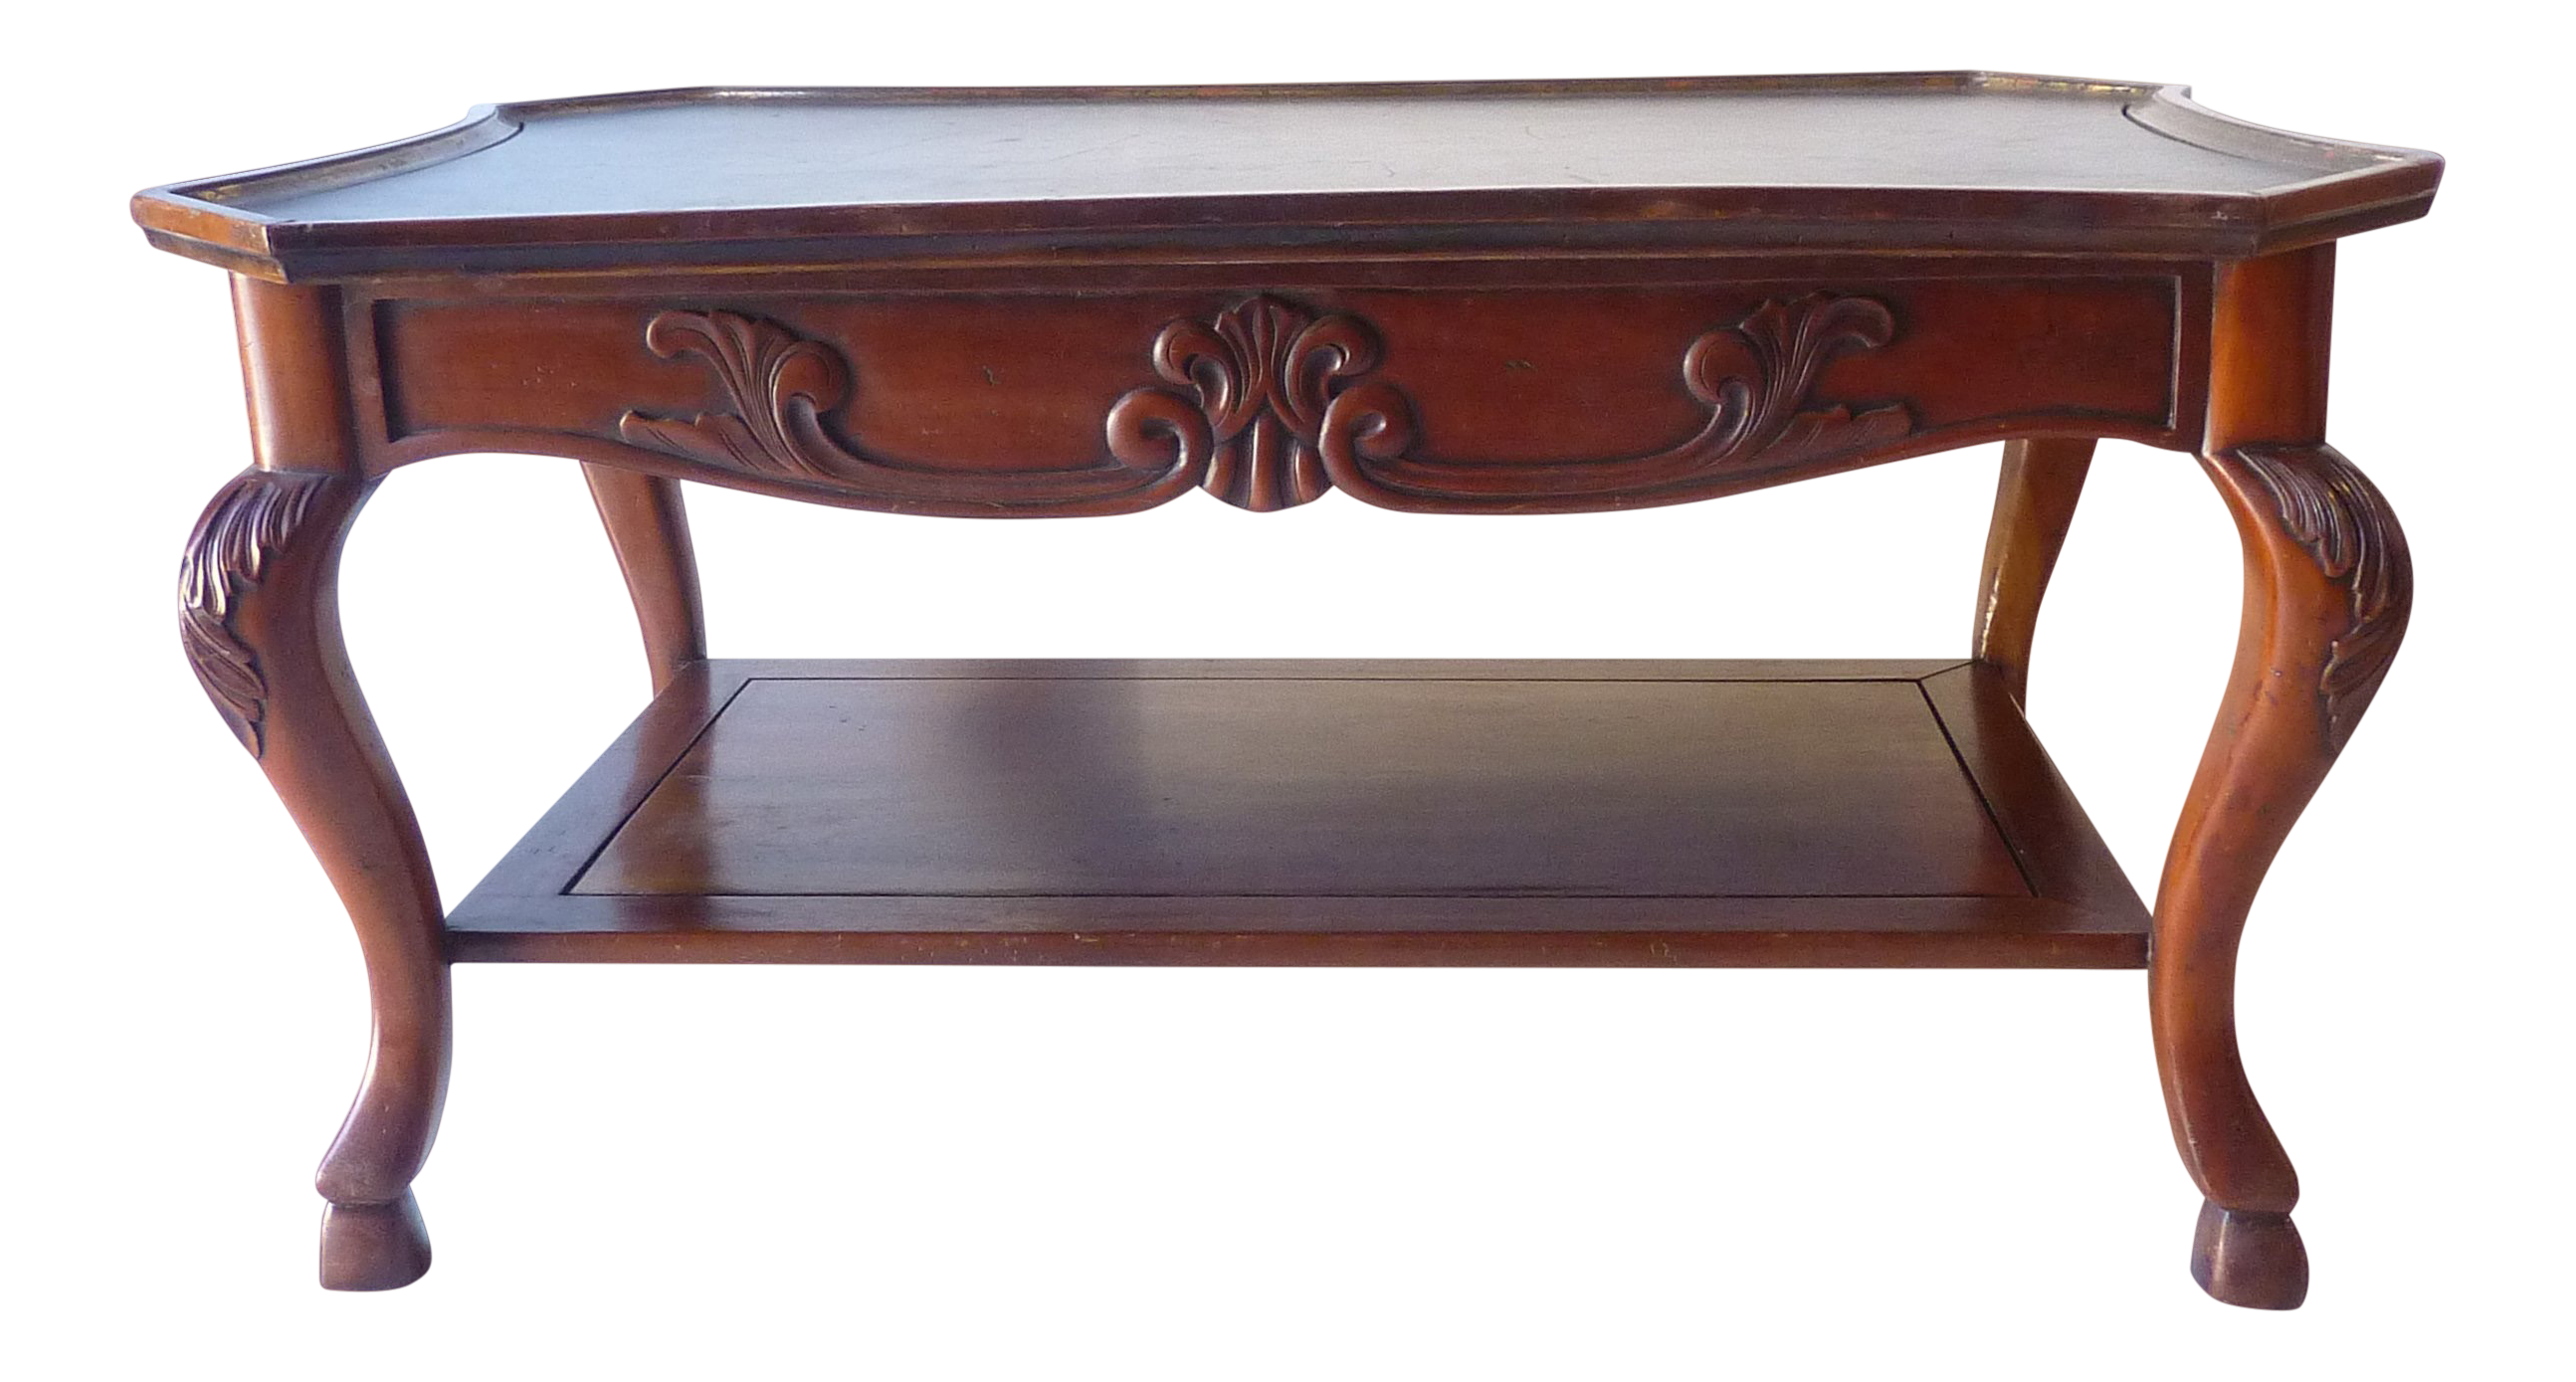 - 20th Century Rococo Revival Leather Top Coffee Table Chairish